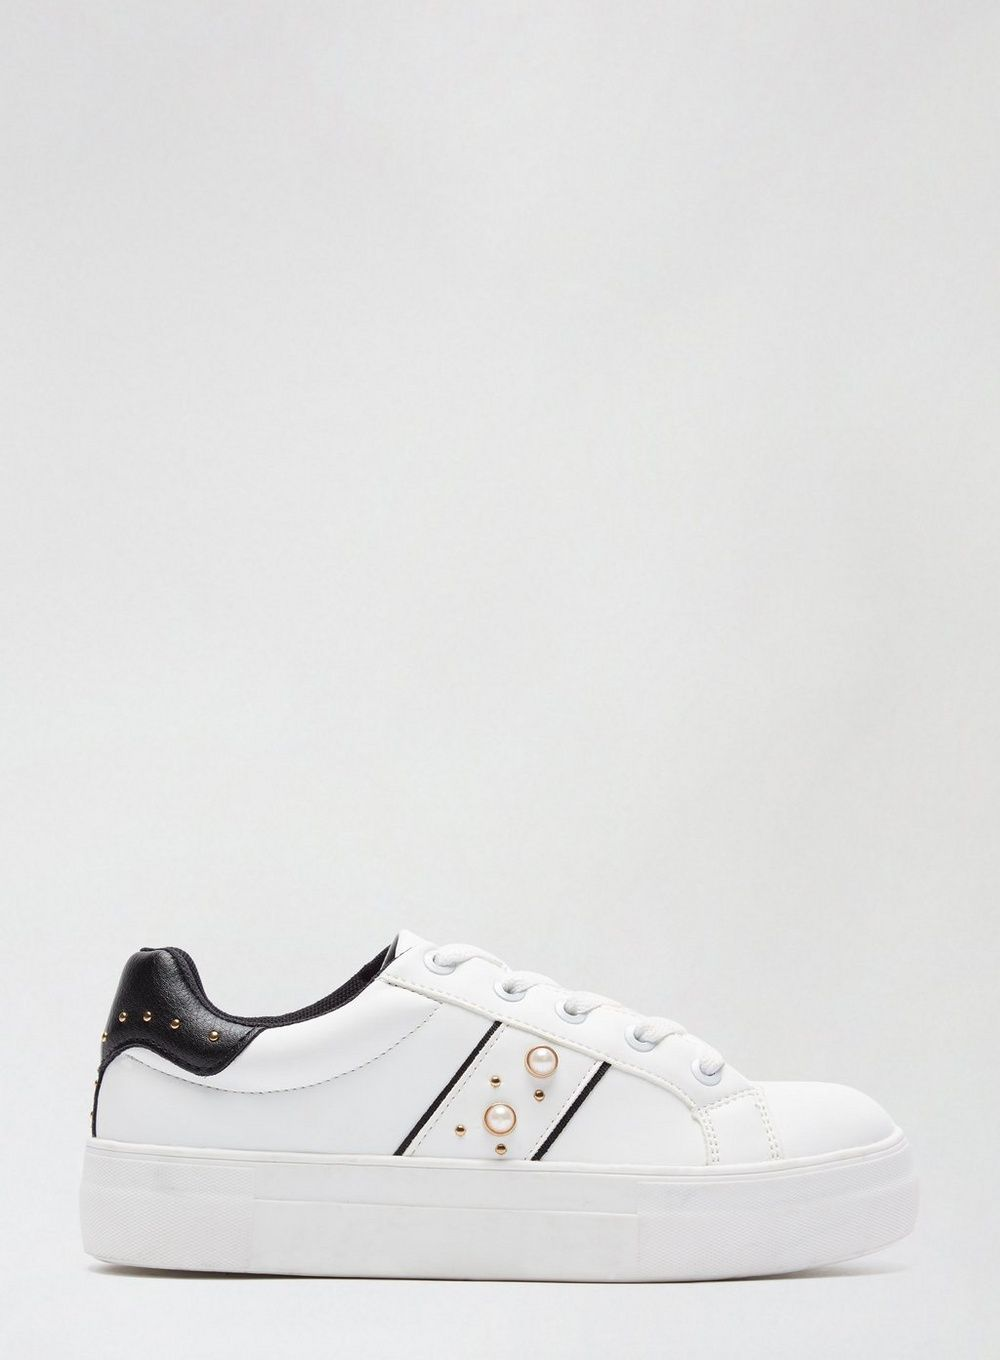 Dorothy Perkins Womens White Itsy Pearl Trainers Sports Flats Sneakers Shoes